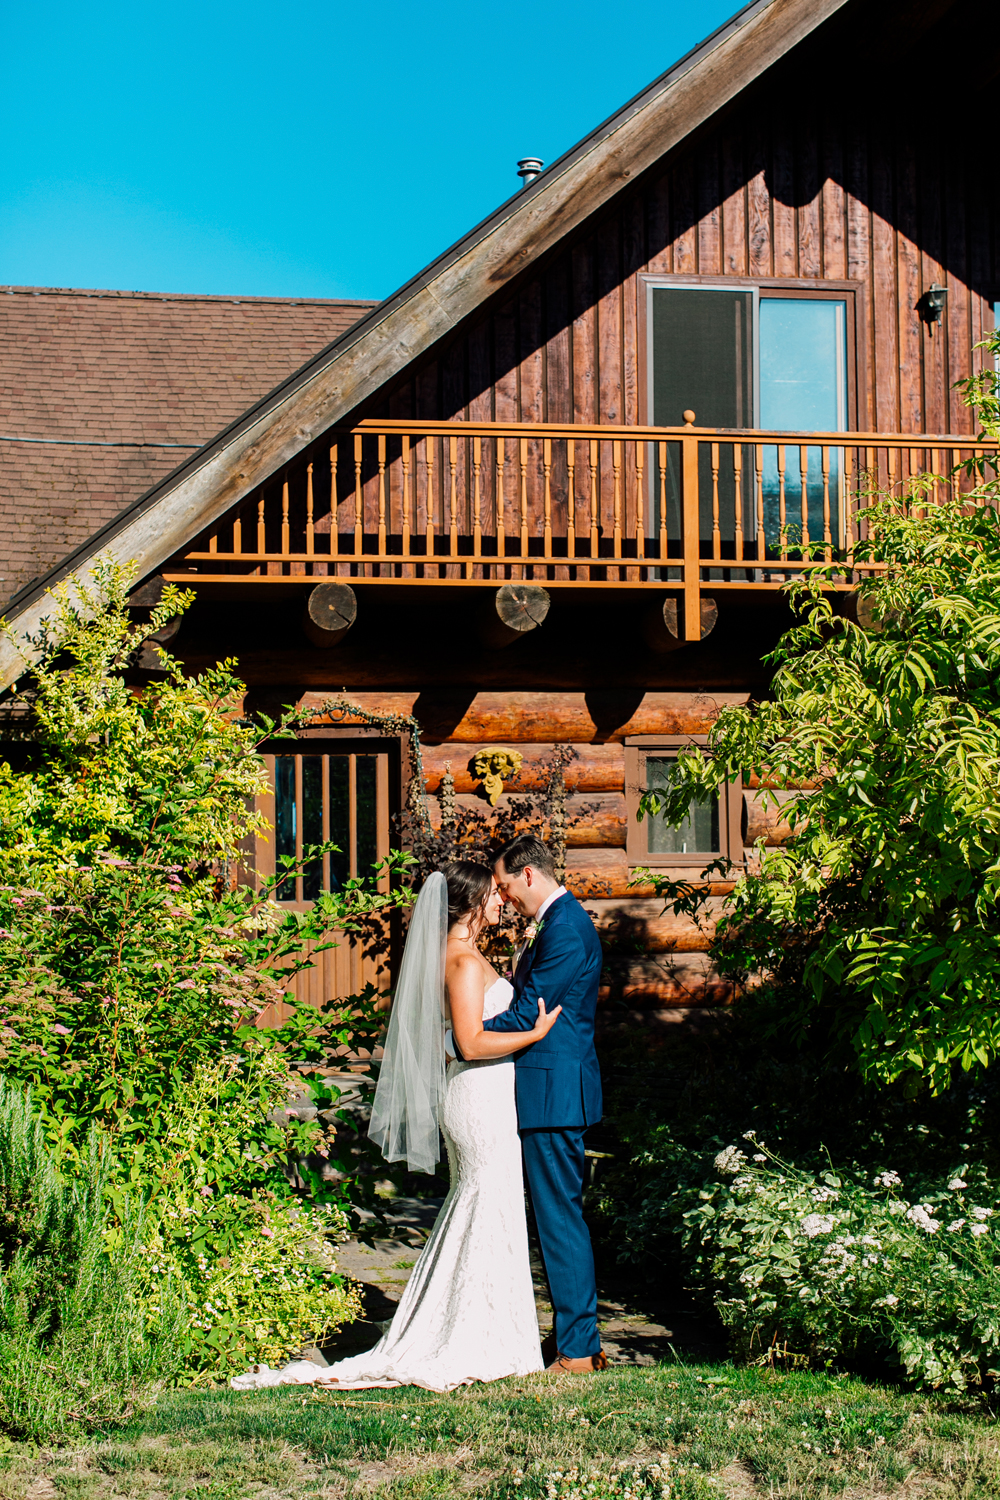 052-bellingham-wedding-photographer-barnstar-wedding-ferndale-katheryn-moran-photography-zech.jpg